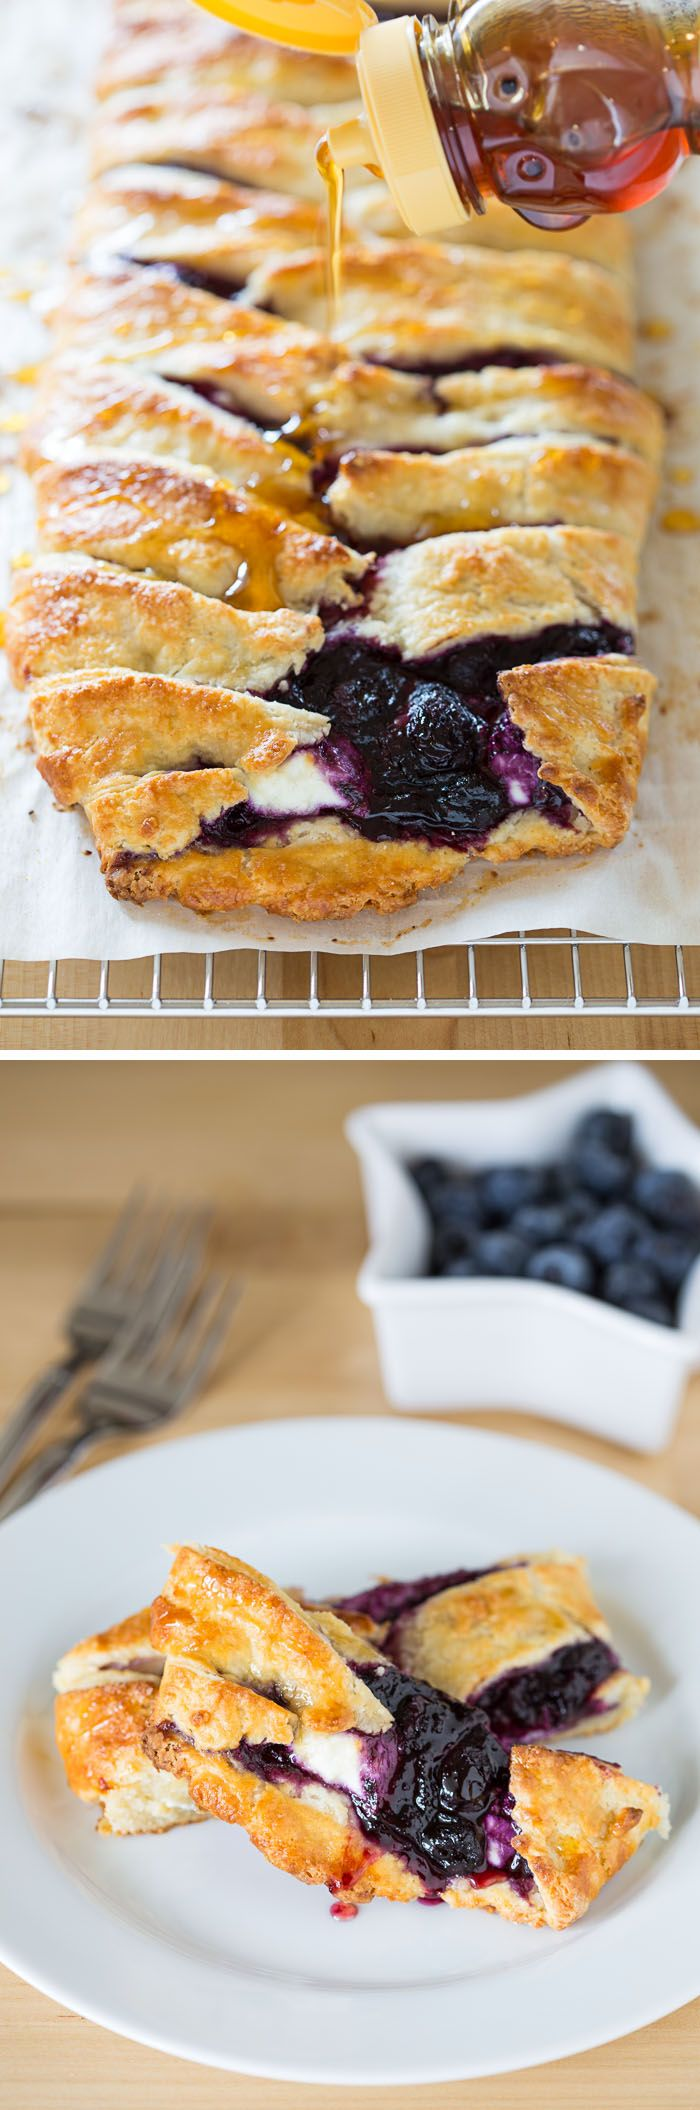 This Blueberry Goat Cheese Pastry Braid is the perfect appetizer! The recipe is super easy but results in a gorgeous, delicious, fancy pastry braid!